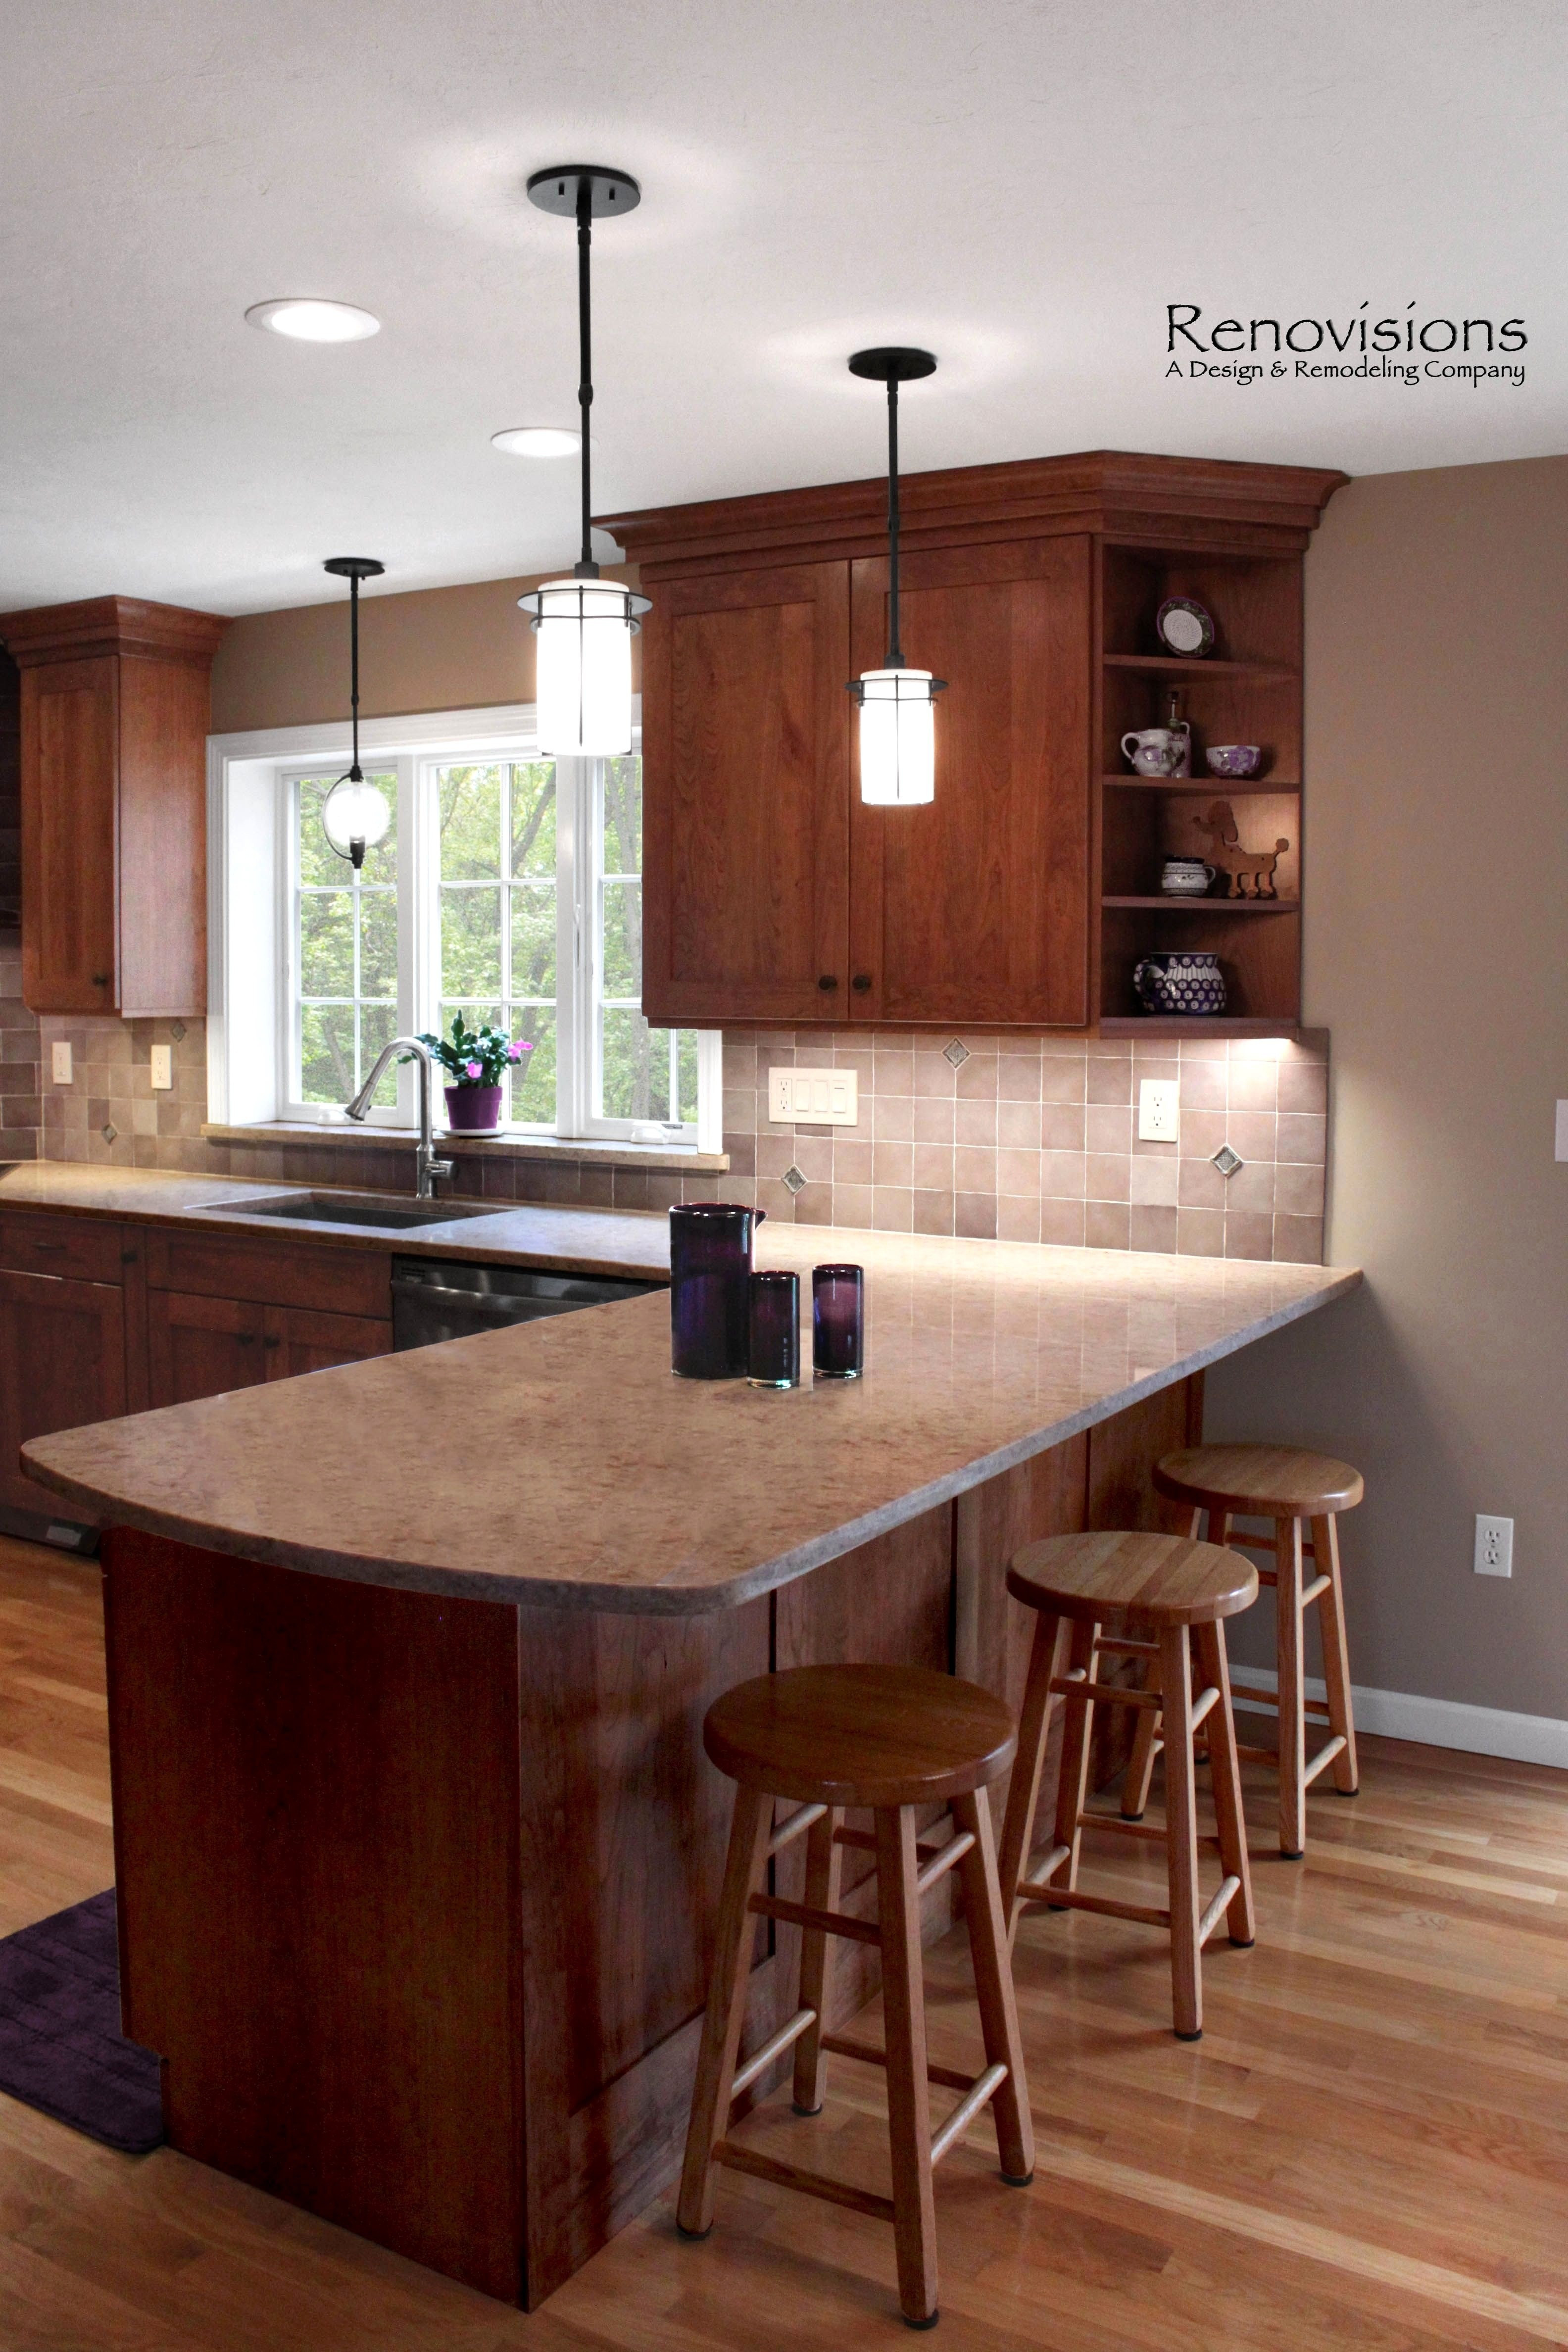 hickory hardwood floor stain colors of kitchen cabinet wood colors awesome how to stain kitchen cupboards with kitchen cabinet wood colors lovely 20 fresh design for kitchen cabinets colors of kitchen cabinet wood